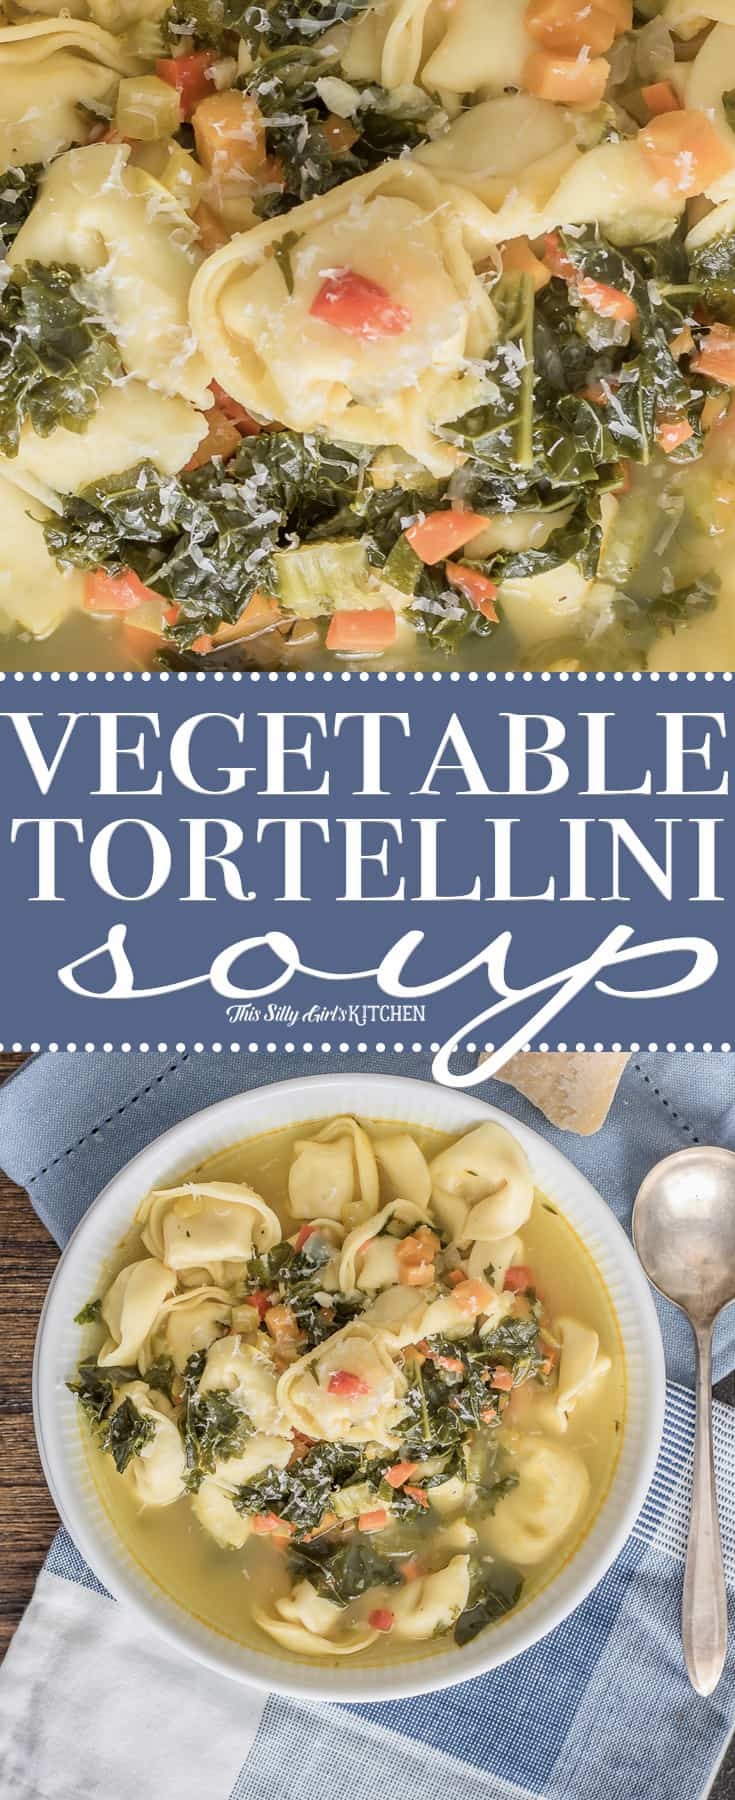 Vegetable Tortellini Soup, a hearty and comforting soup loaded with veggies and cheese tortellini! #Recipe from ThisSillyGirlsKitchen.com #soup #tortellinisoup #vegetablesoup